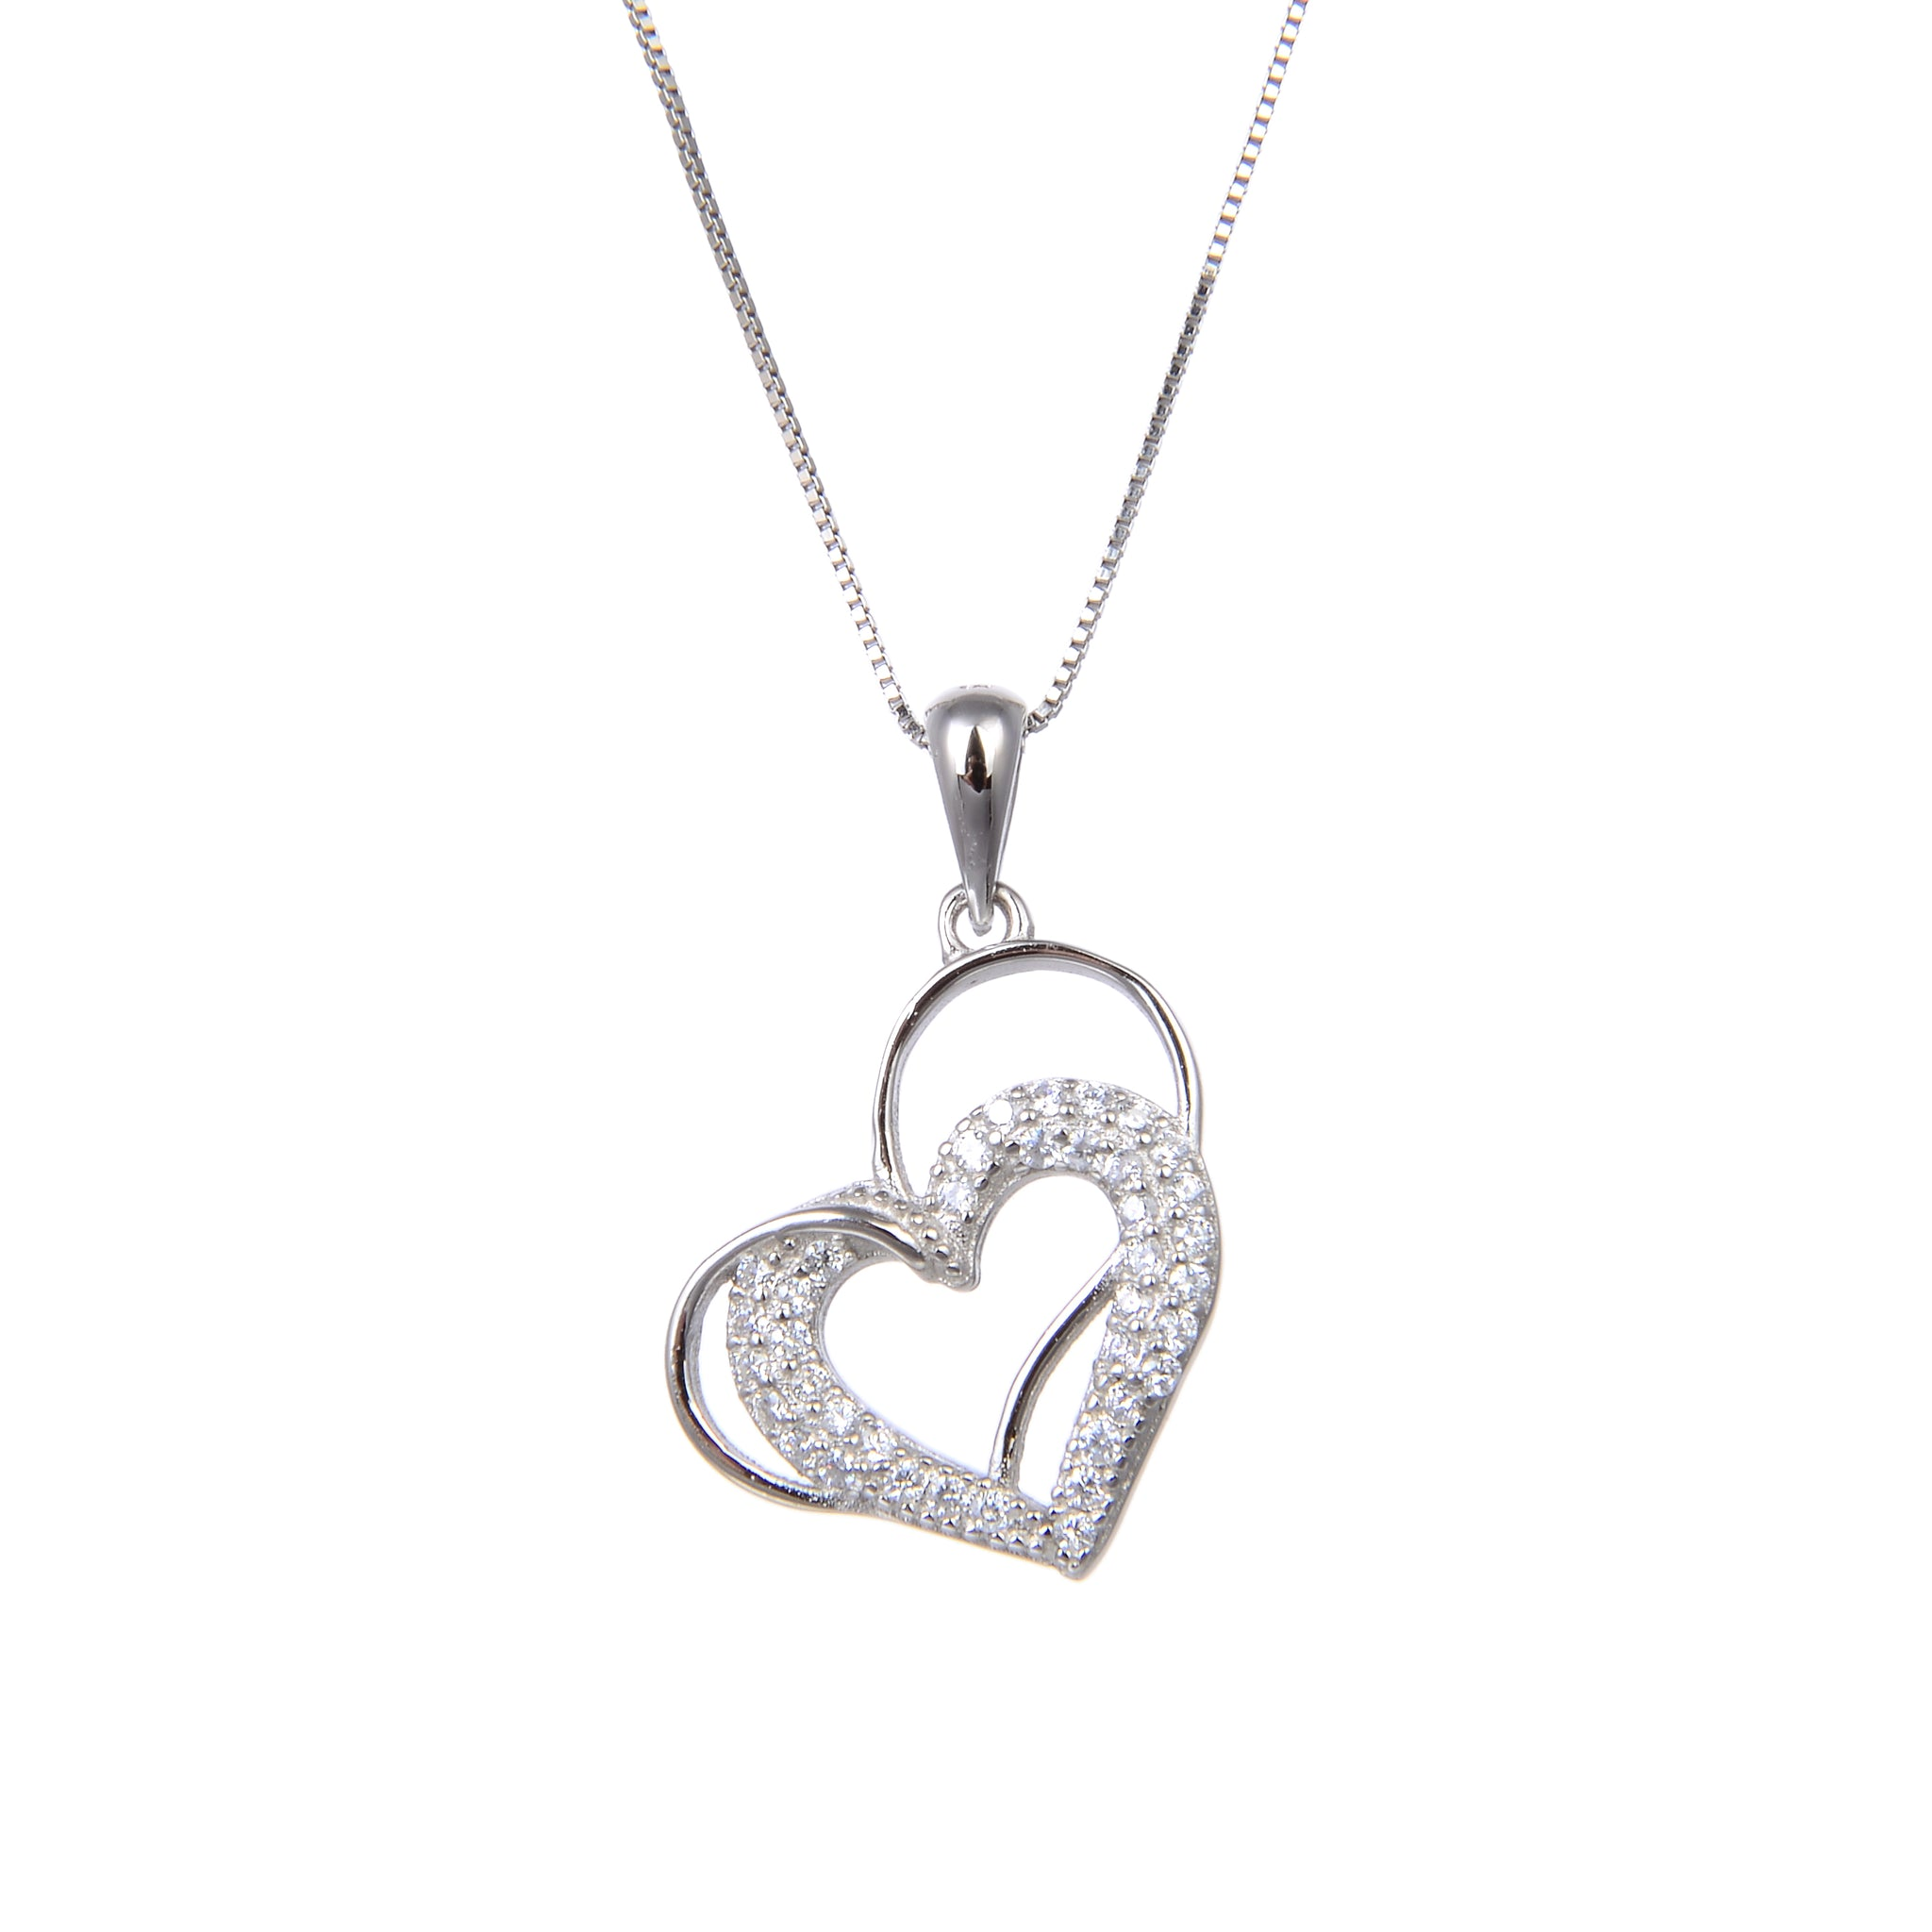 92.5 Sterling Silver Necklace With CZ Cubic Zirconia Double Heart Shape Pendant